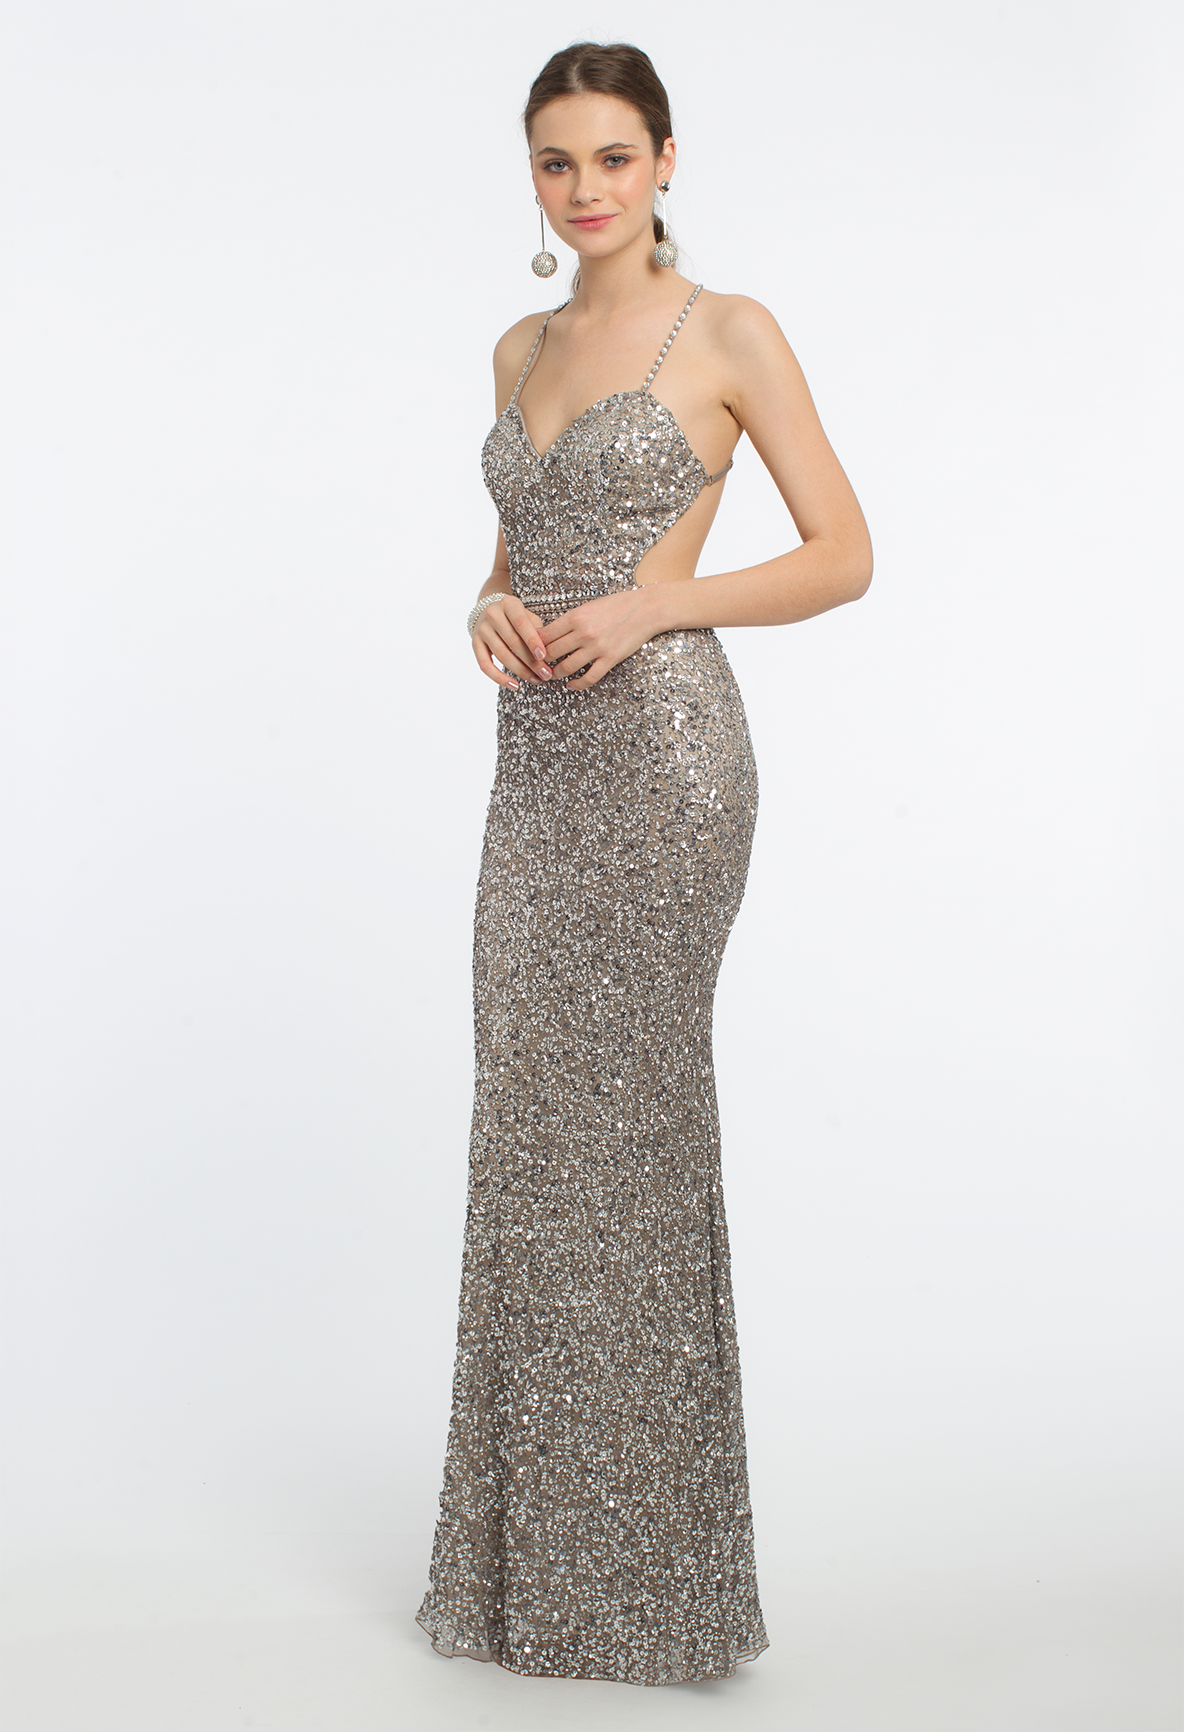 Let it shined shine and shine in this formal evening gown with